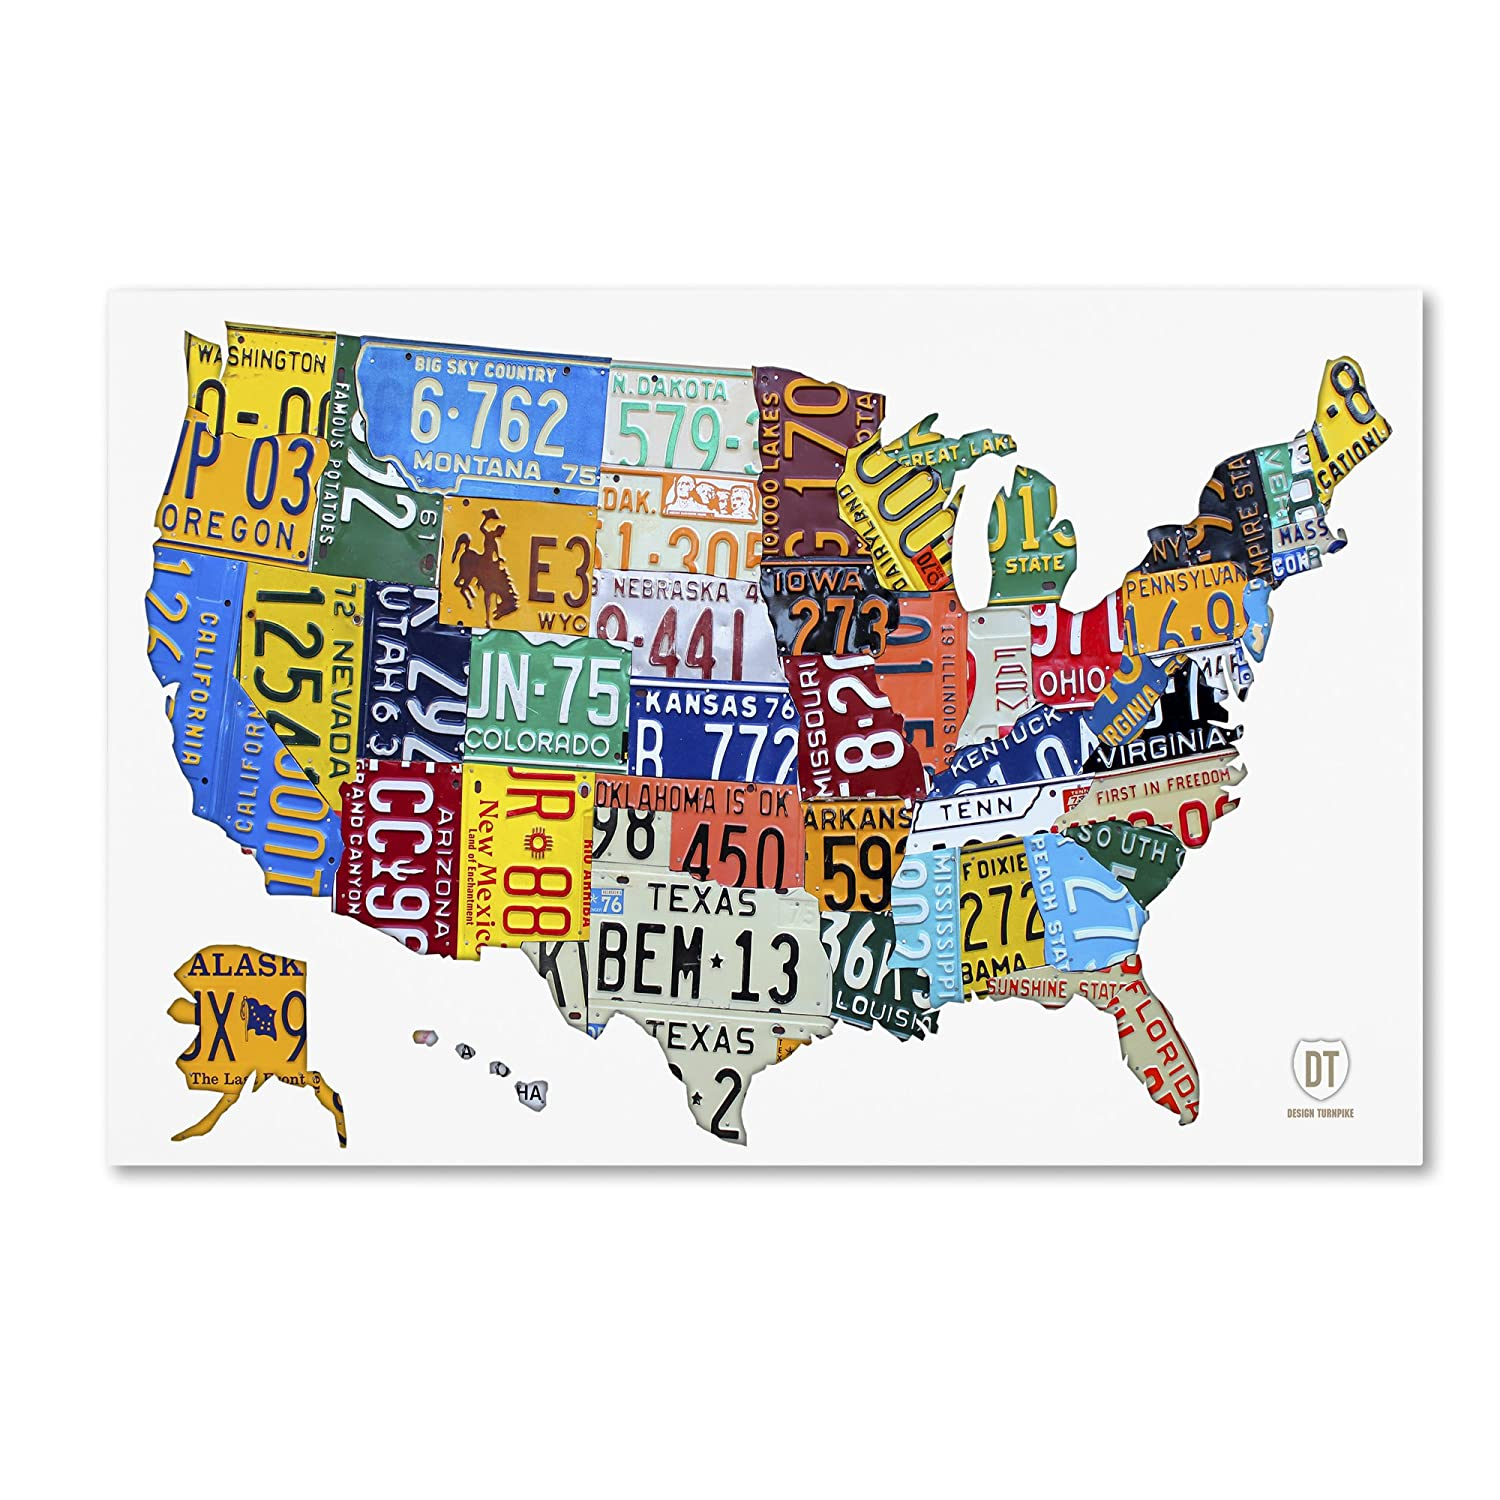 License Plate United States Map.Amazon Com License Plate Map Usa 2 By Design Turnpike 30x47 Inch